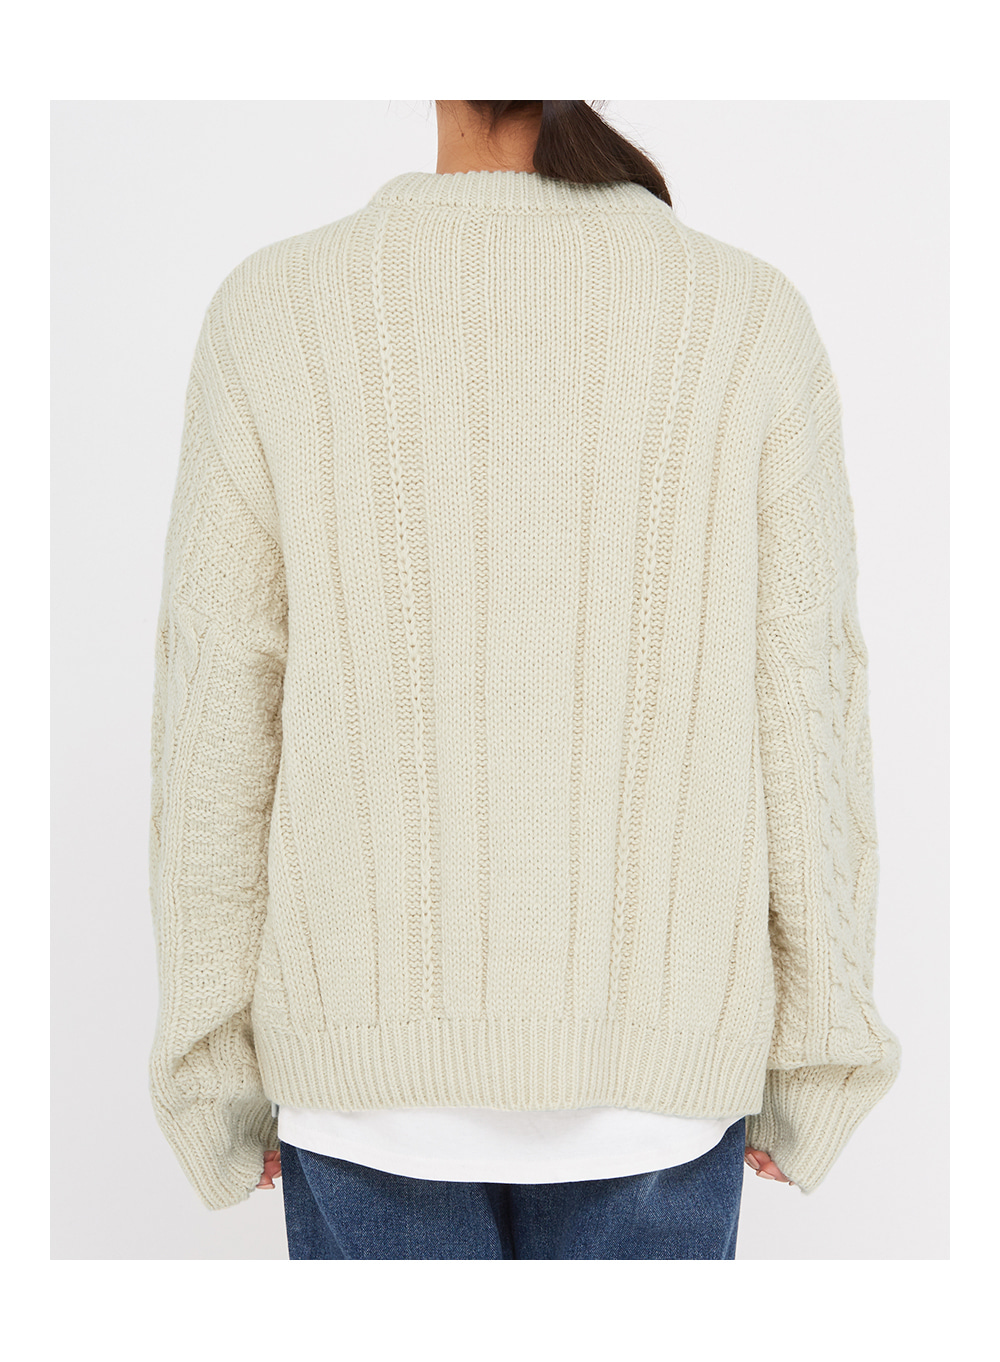 add beet cable round knit